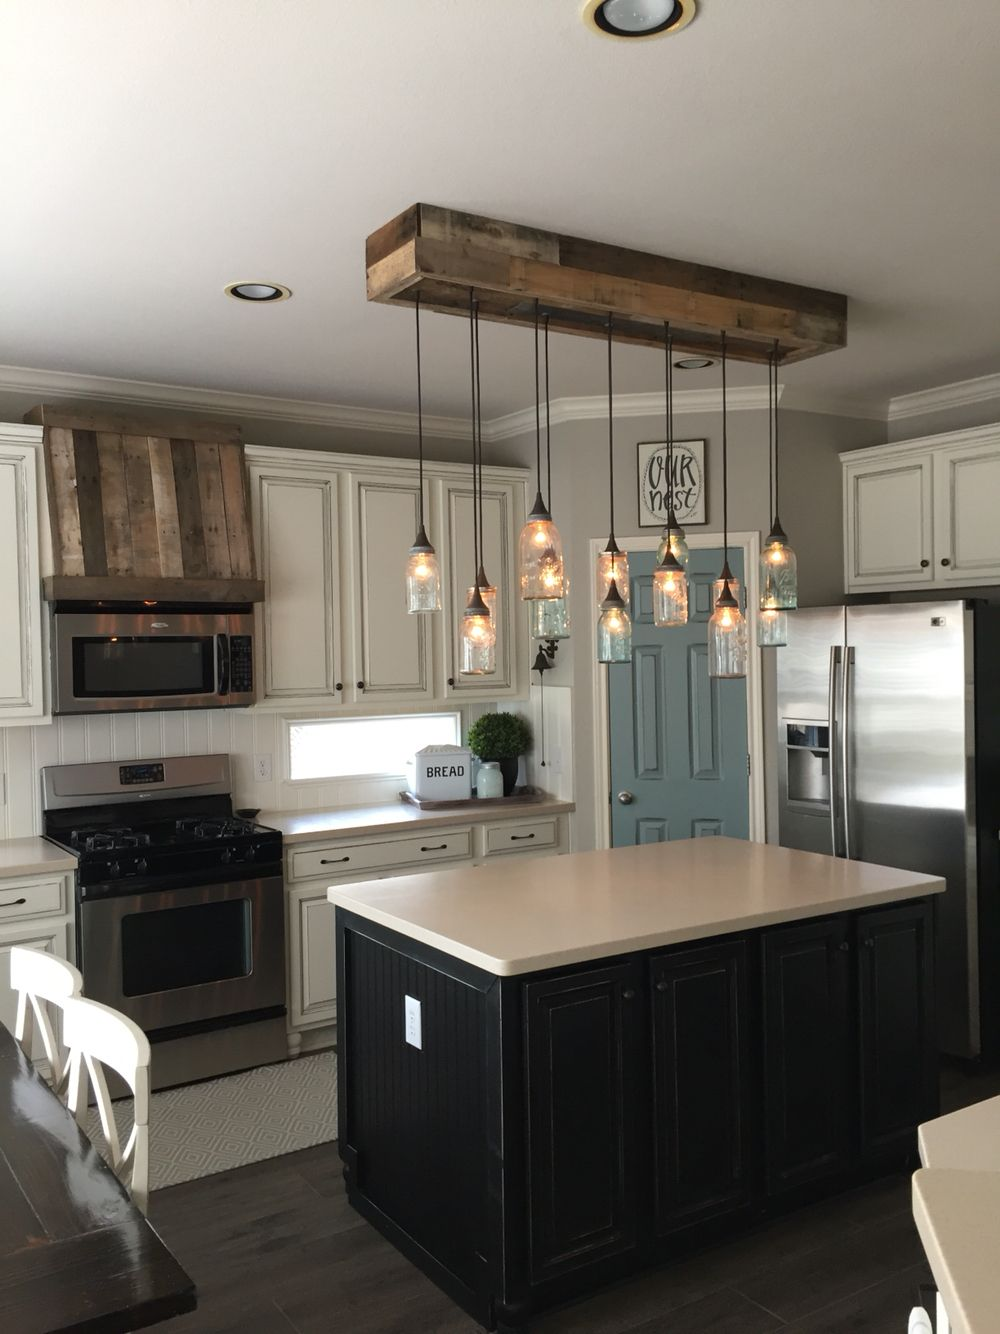 Attrayant Hi All! Updated Pics @ourfauxfarmhouse On IG. COME FOLLOW! Thanks! {holly}  Lauritzen Home Projects. Mason Jar Light And Faux Oven Hood (pallet Wood)